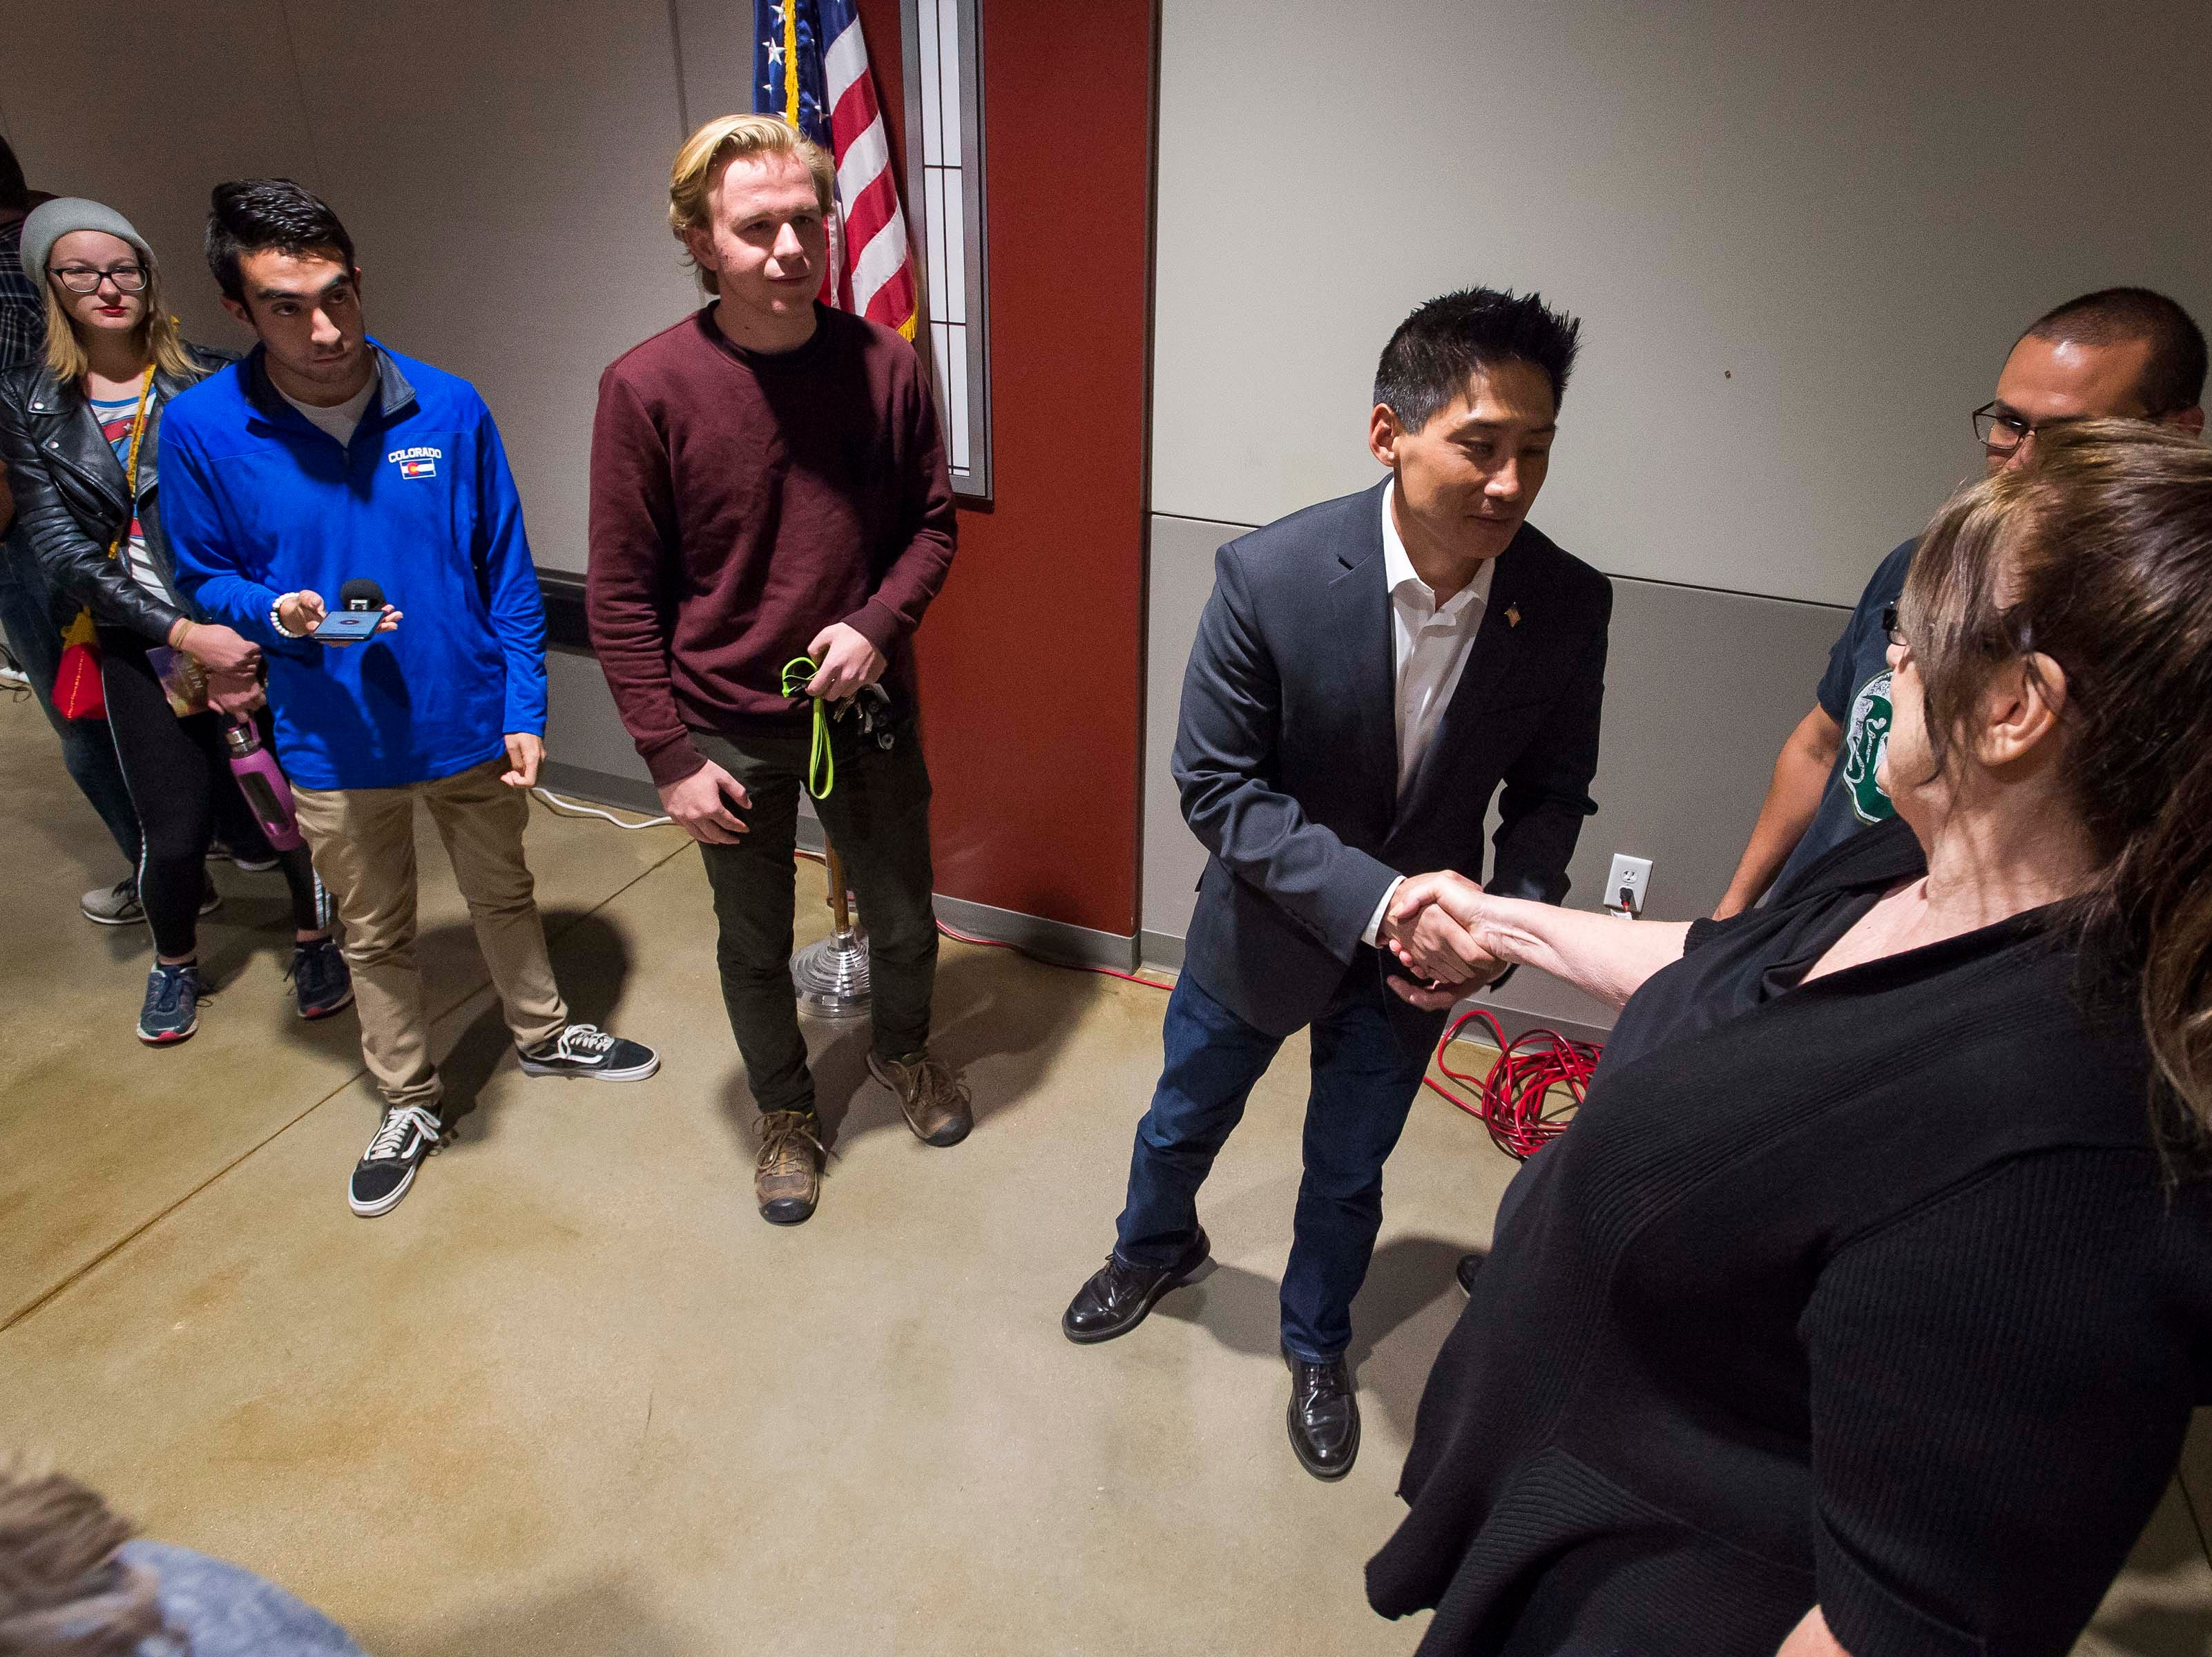 Colorado's 2nd Congressional District Republican Peter Yu shakes hands with St. Louis, Mo. resident Anna Stover after participated in a debate with Democratic nominee Joe Neguse on Wednesday, Sept. 26, 2018, at the Loveland Classical Schools in Loveland, Colo. Stover was in town visiting relatives.